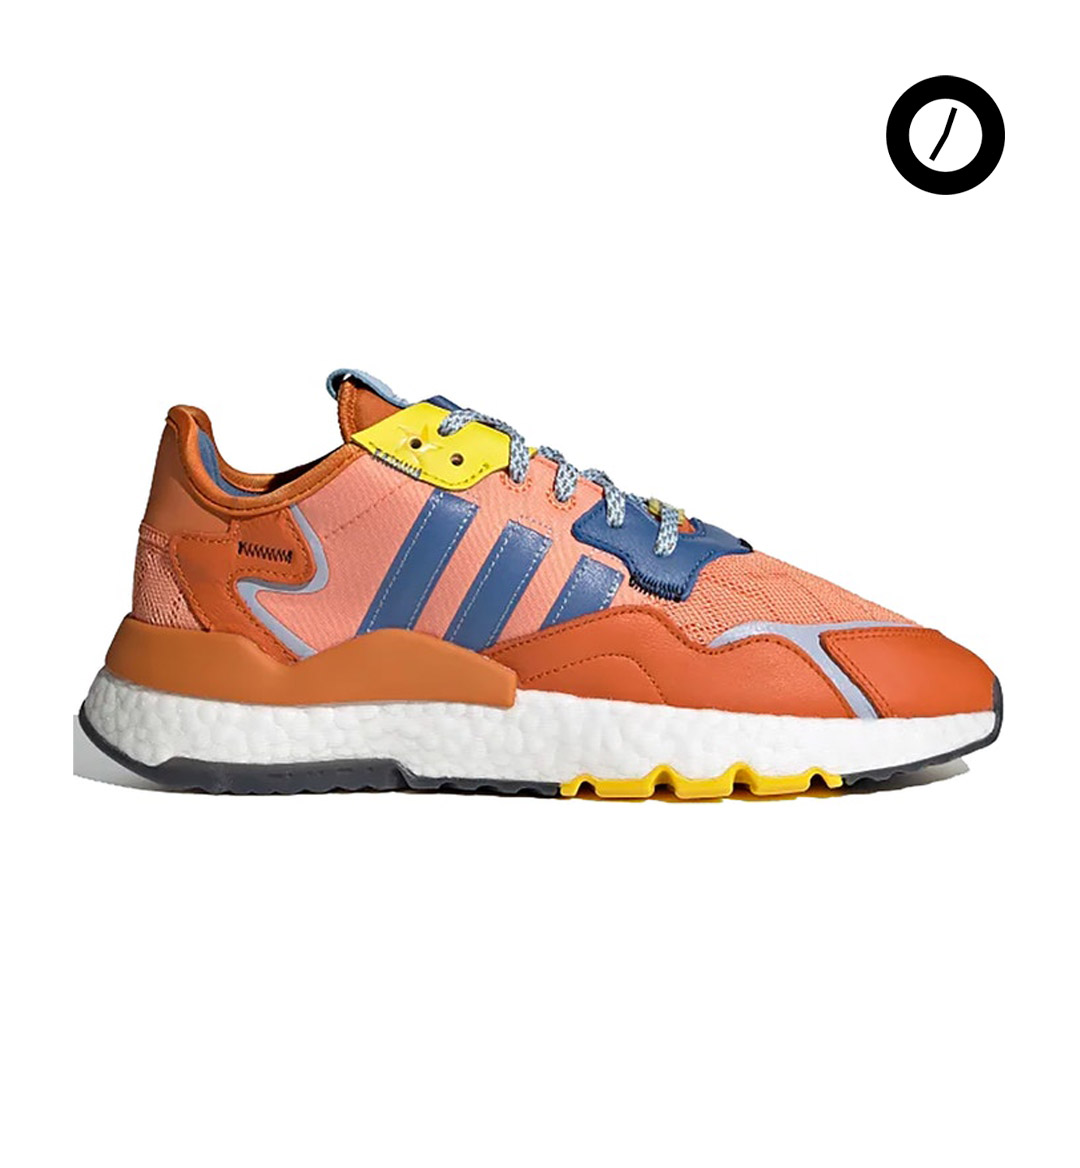 20 Best Adidas Basketball Shoes to Buy Right Now // ONE37pm